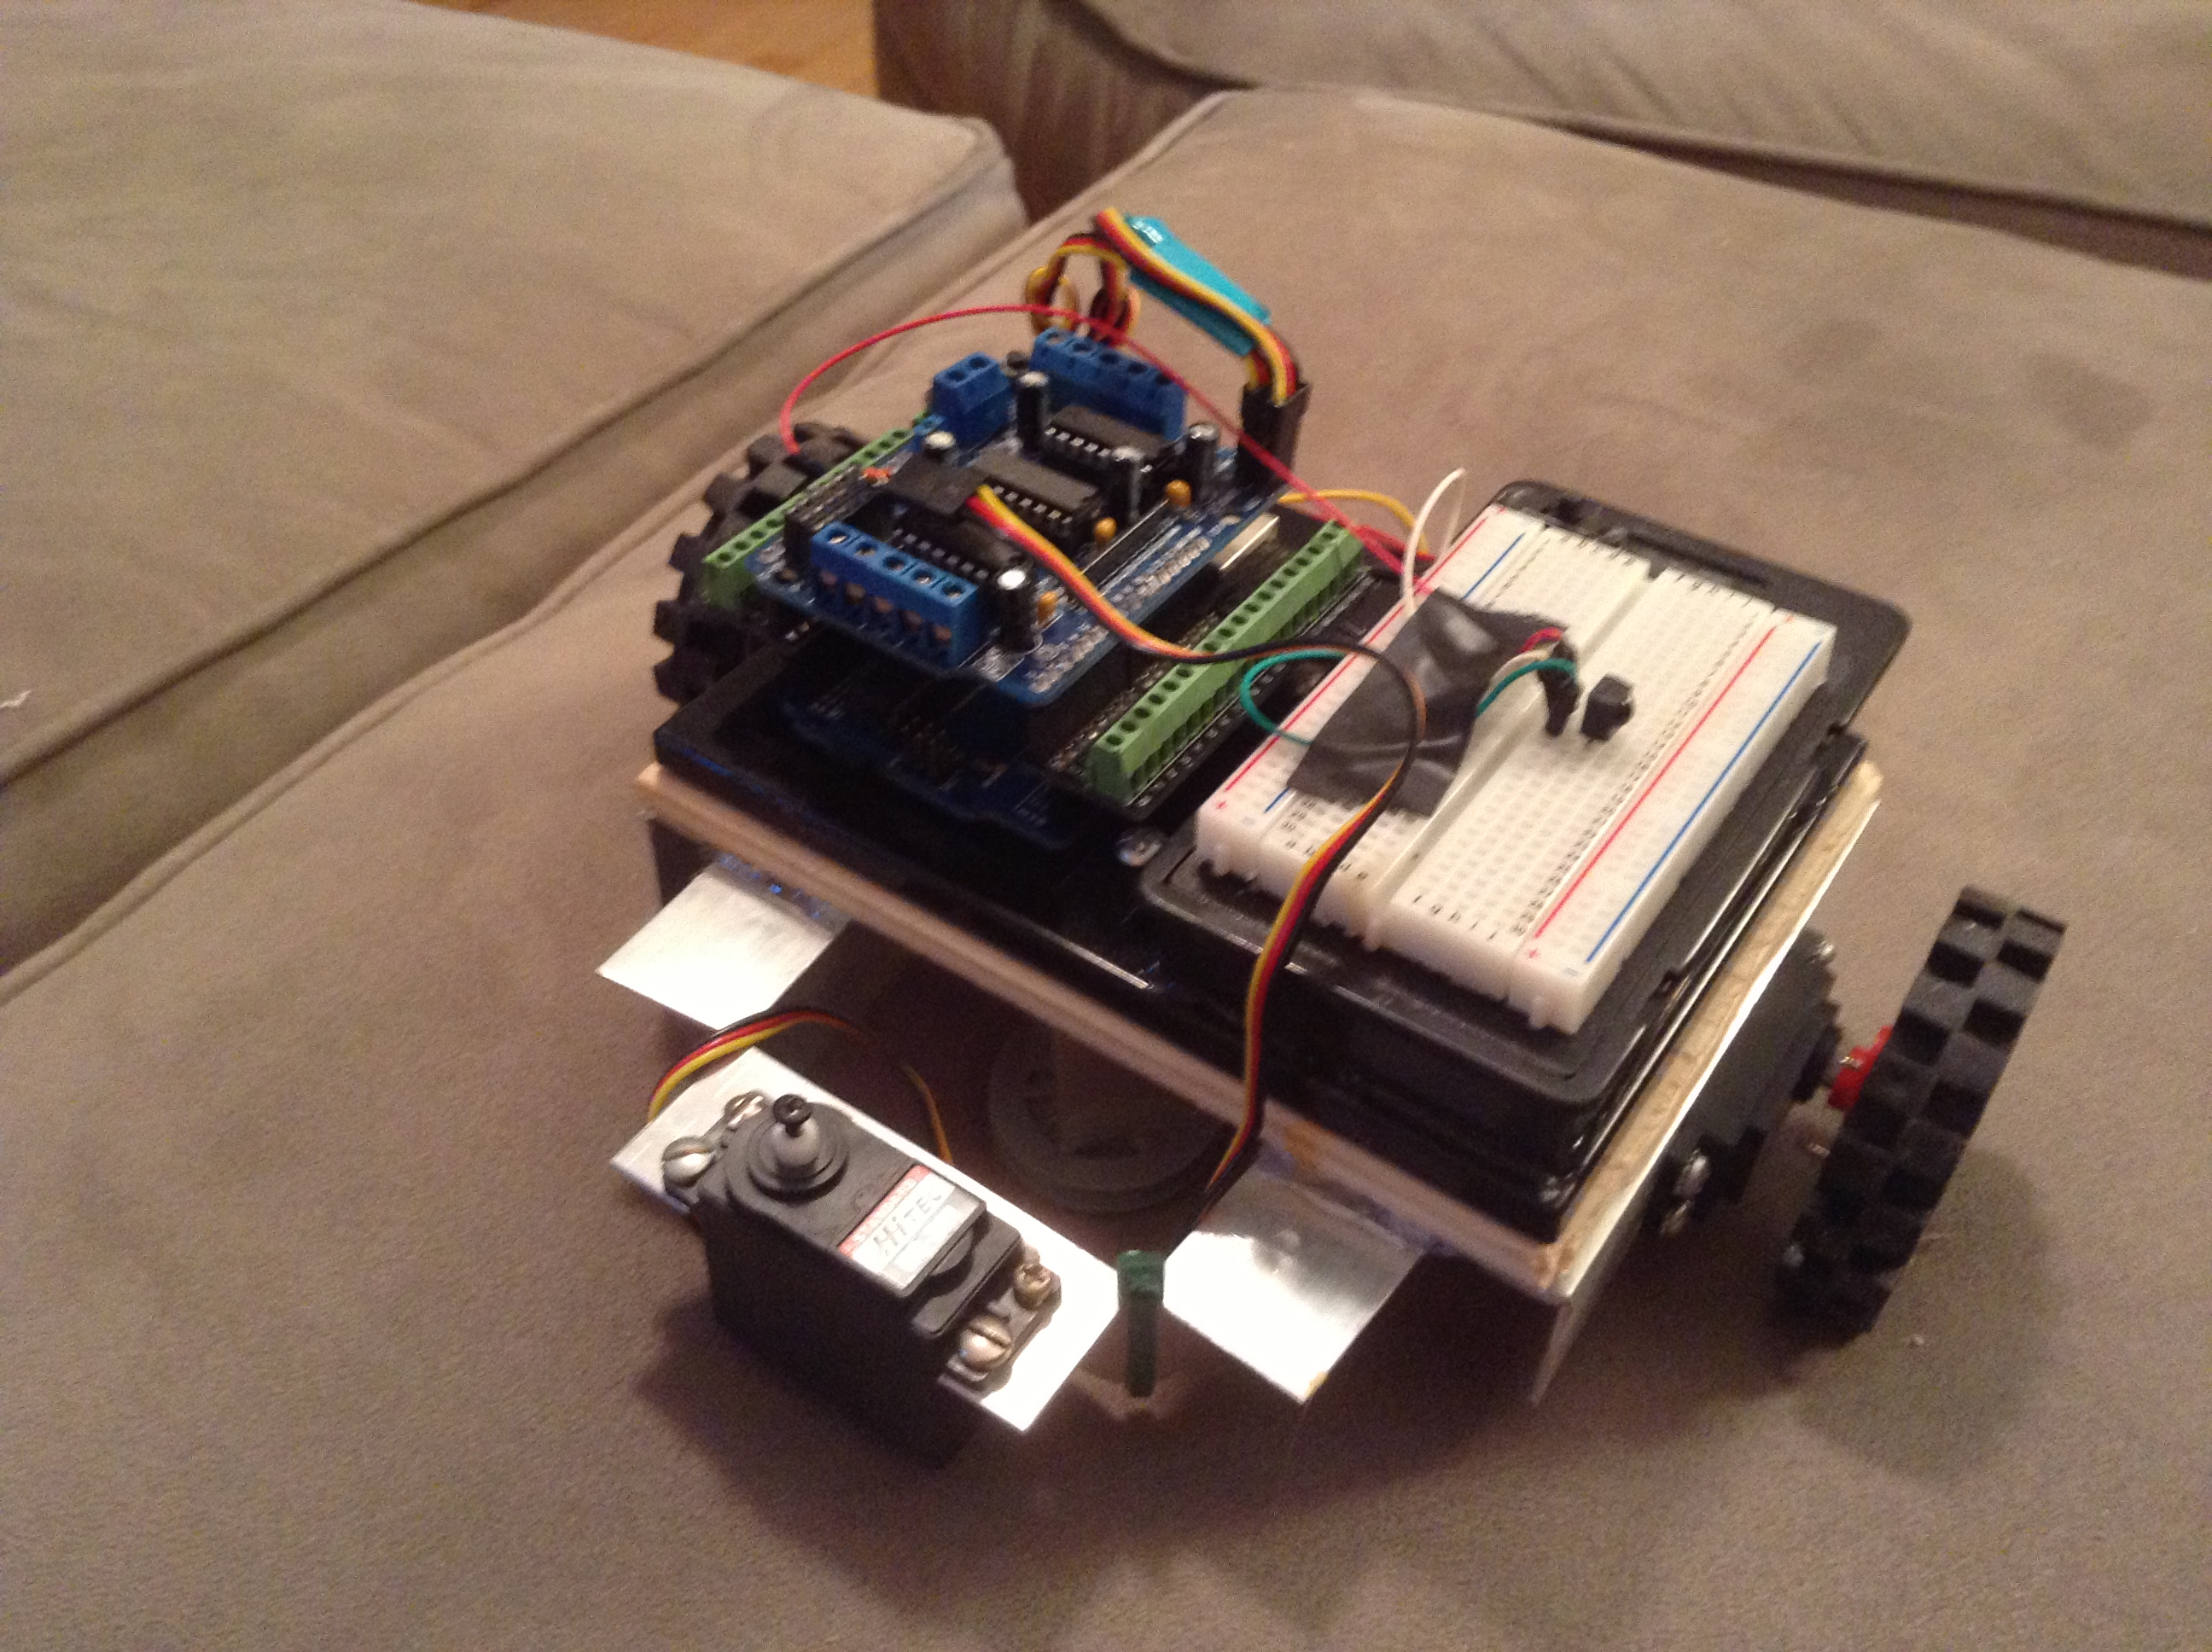 Controlling Arduino RoverBot with TV Remote